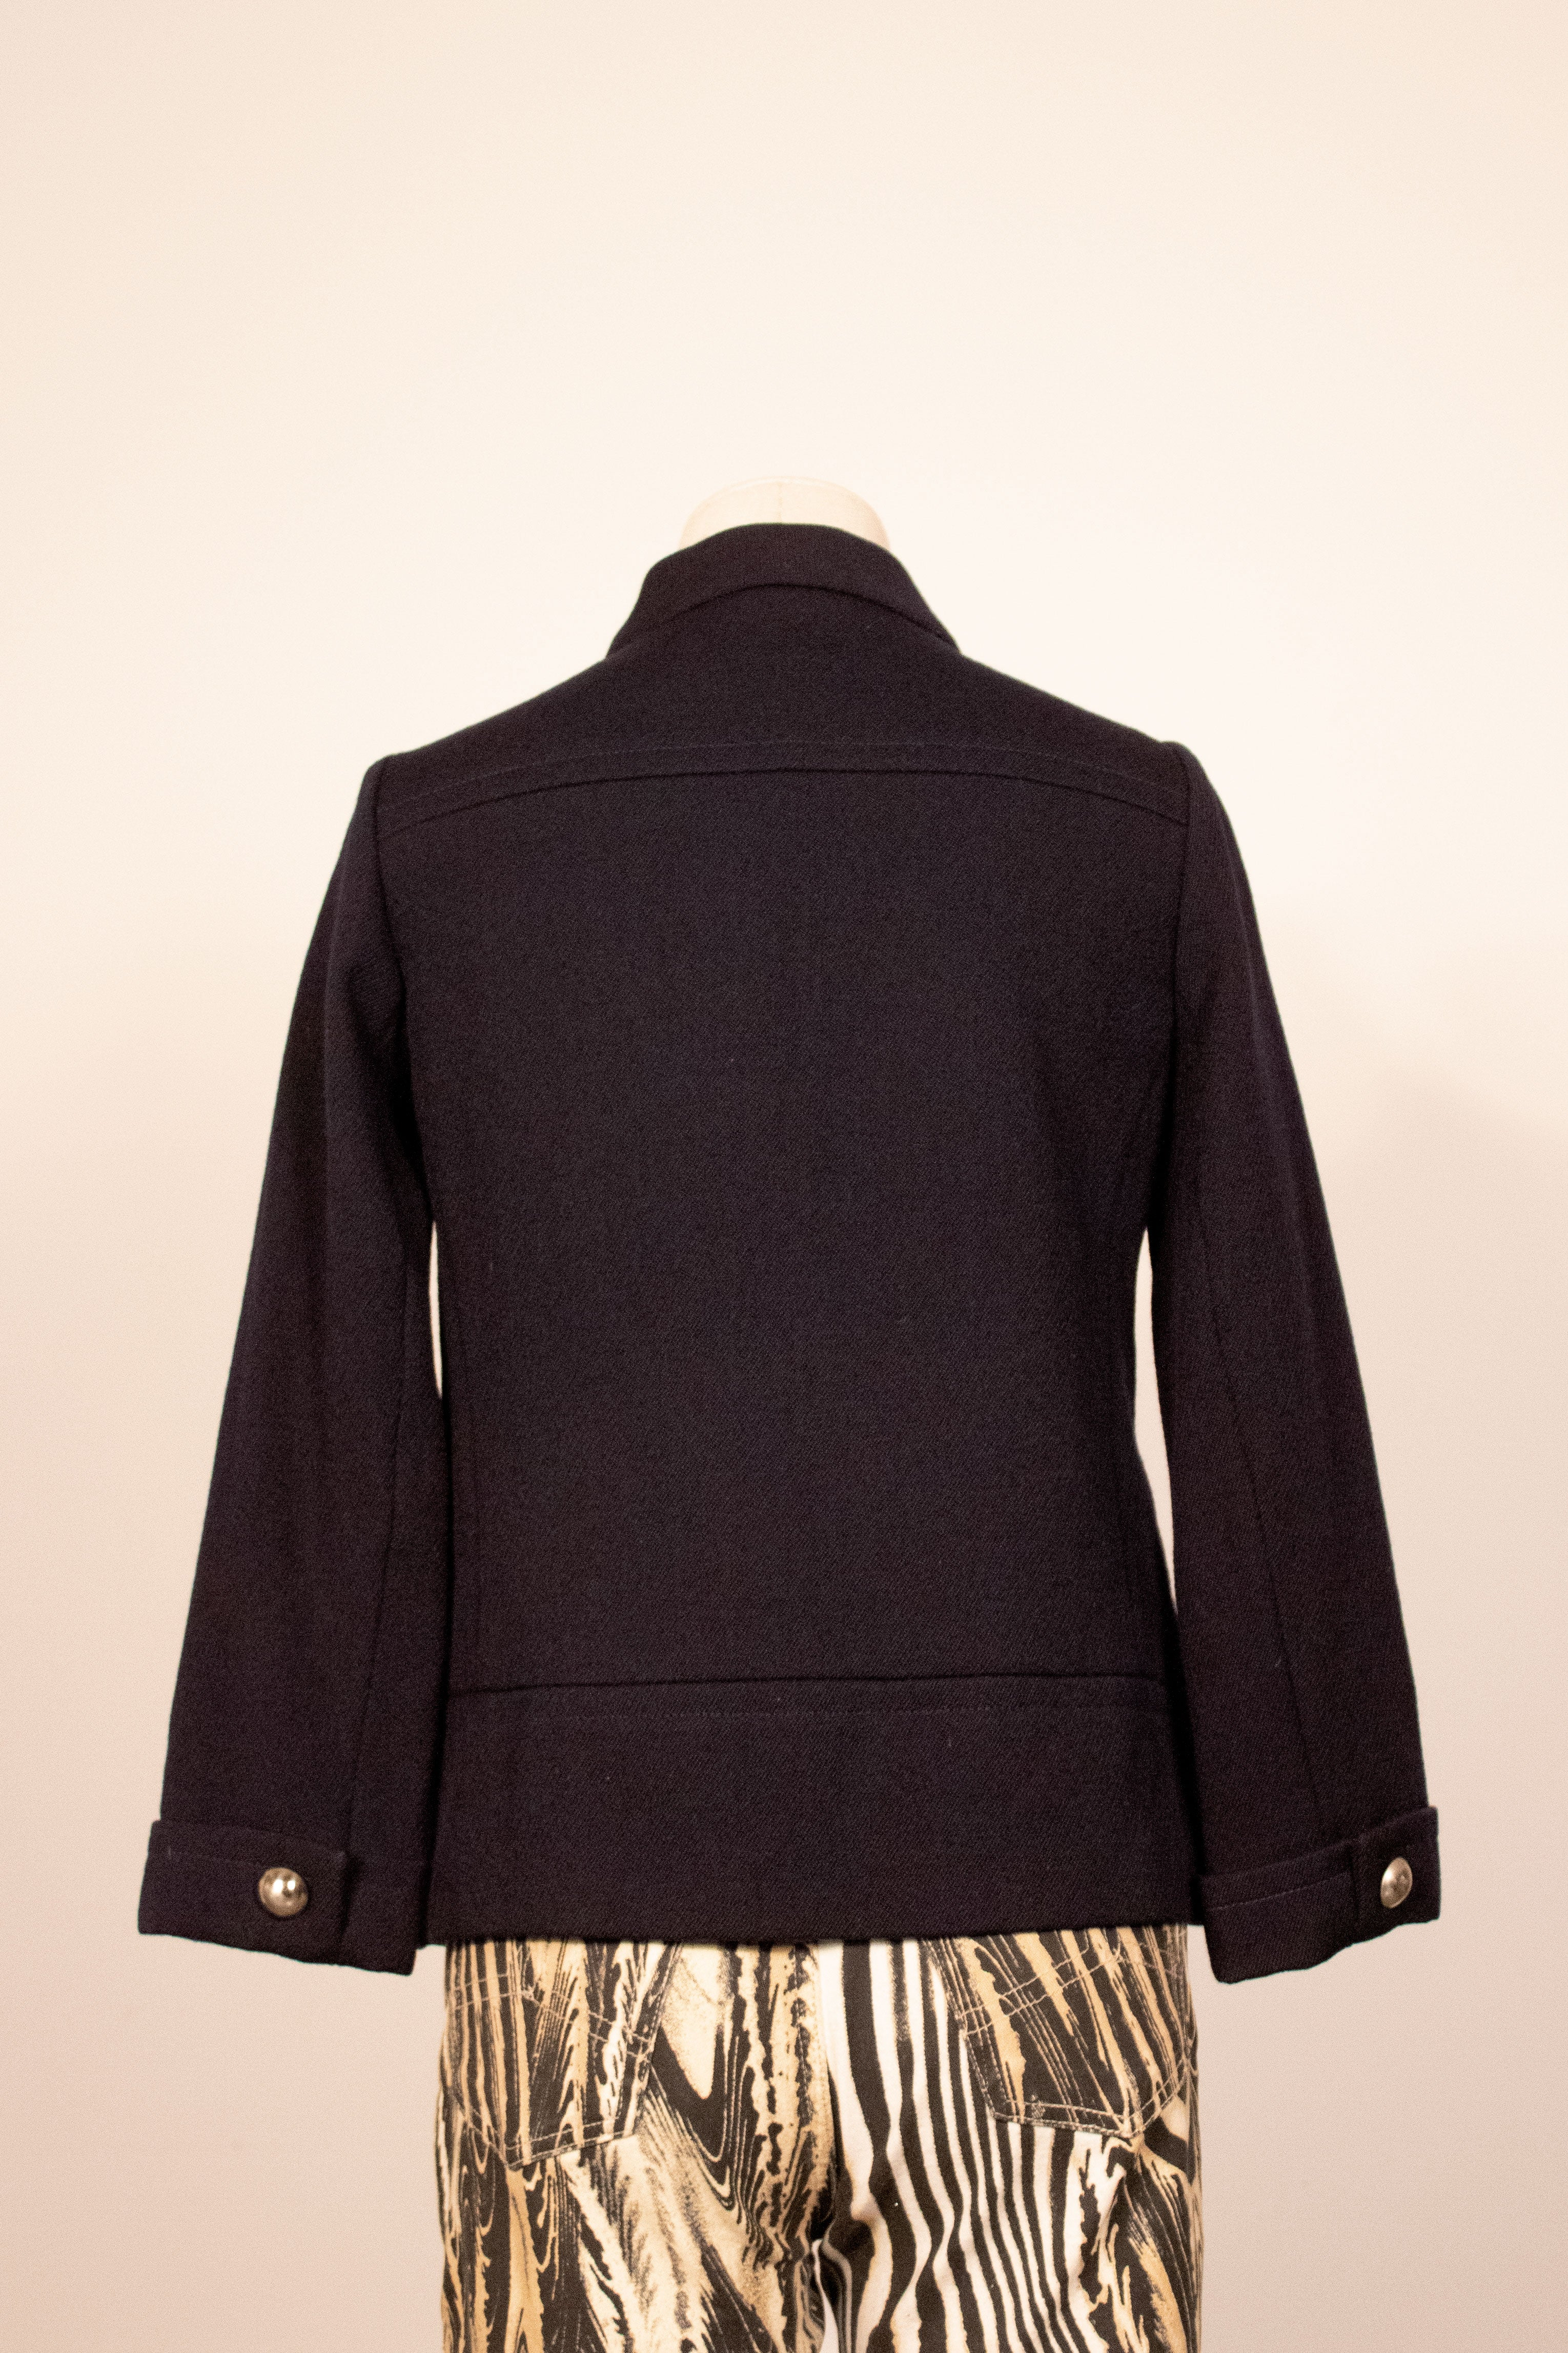 Jacques Heim navy wool military style jacket